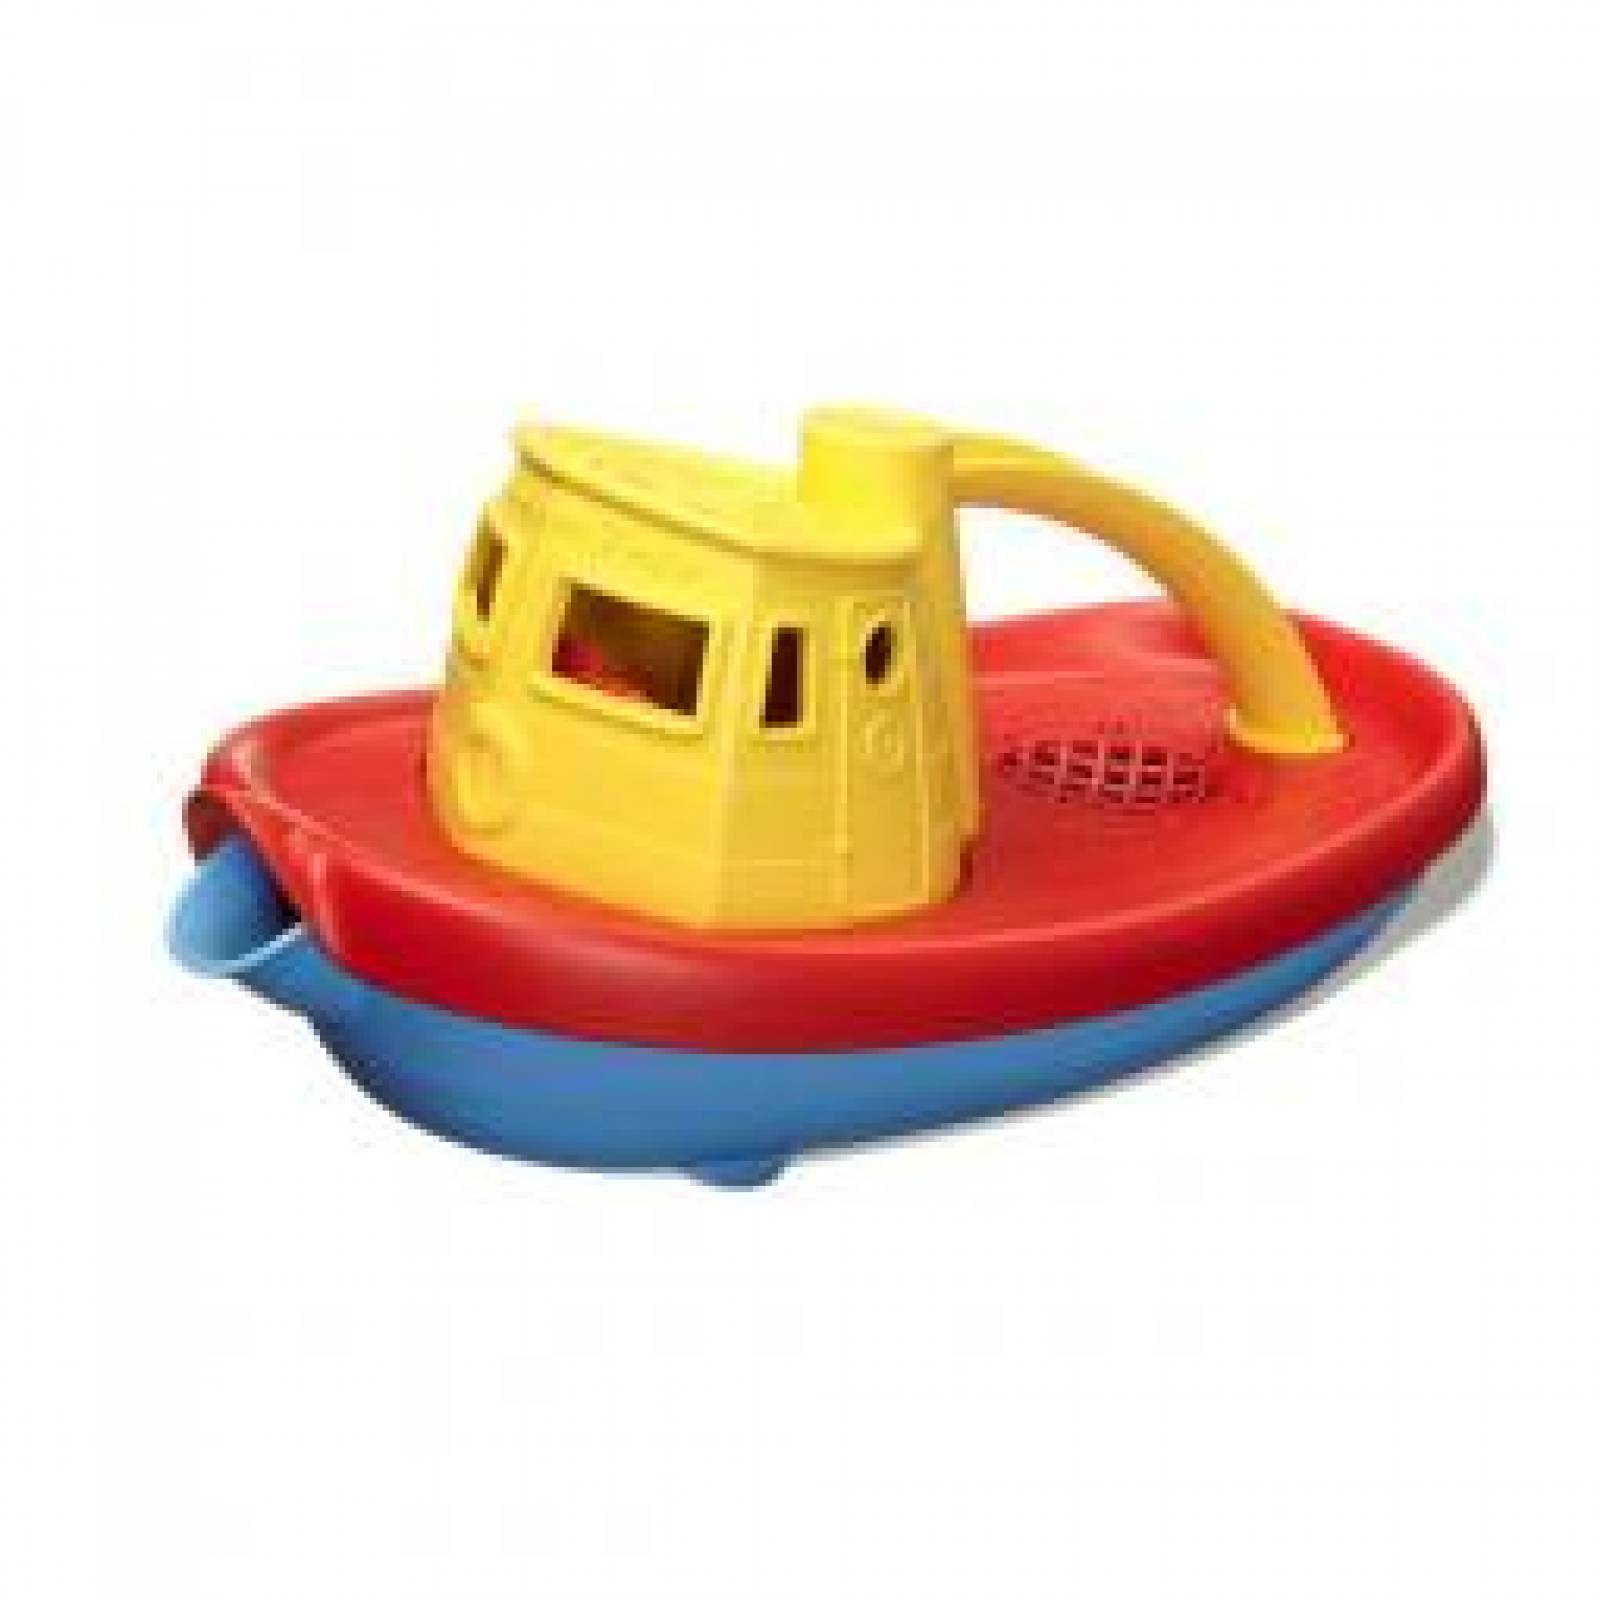 Yellow Top Pouring Tug Boat 6mth+ Recycled Plastic